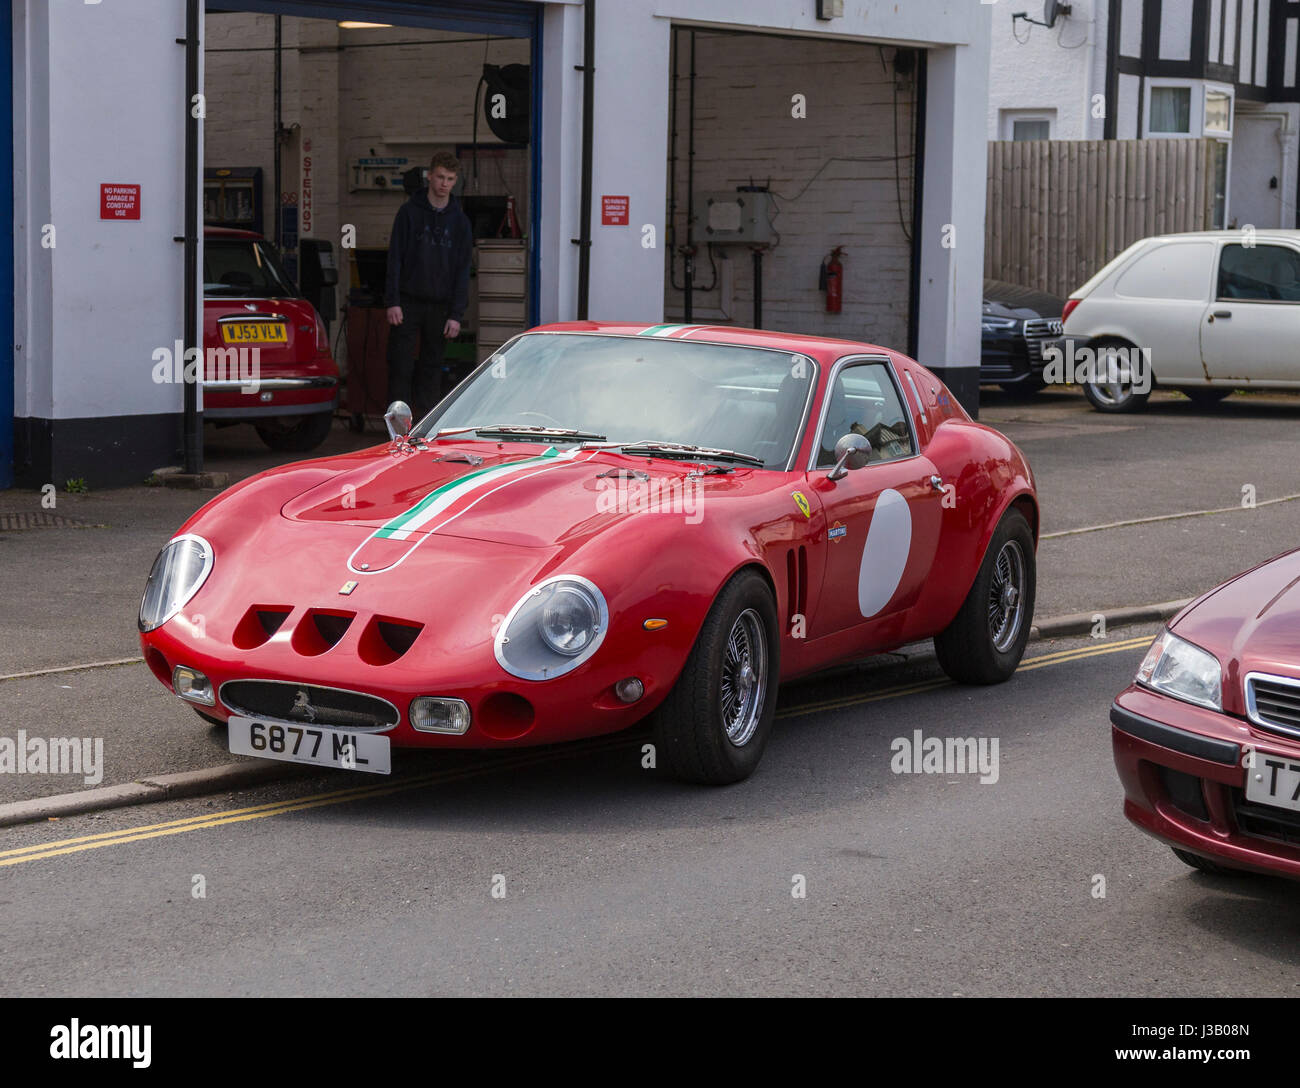 Sidmouth, UK. 4th May, 2017. Ferrari 250 GTO, the world's most expensive car, out on the streets of Sidmouth. - Stock Image